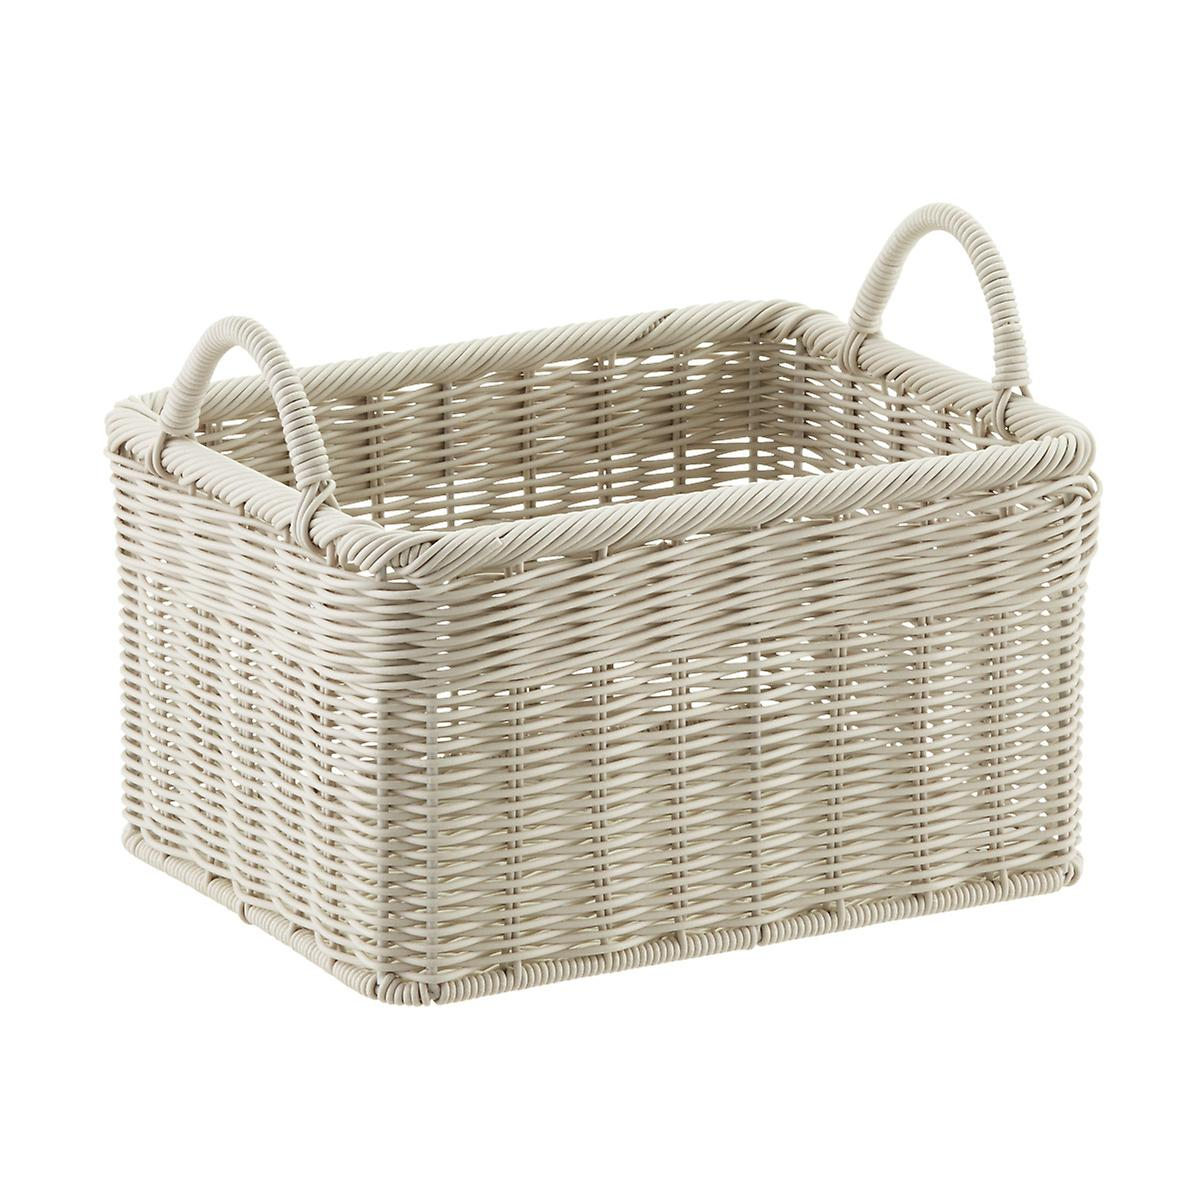 Woven Storage Baskets With Handles : Stone woven plastic storage bins with handles the